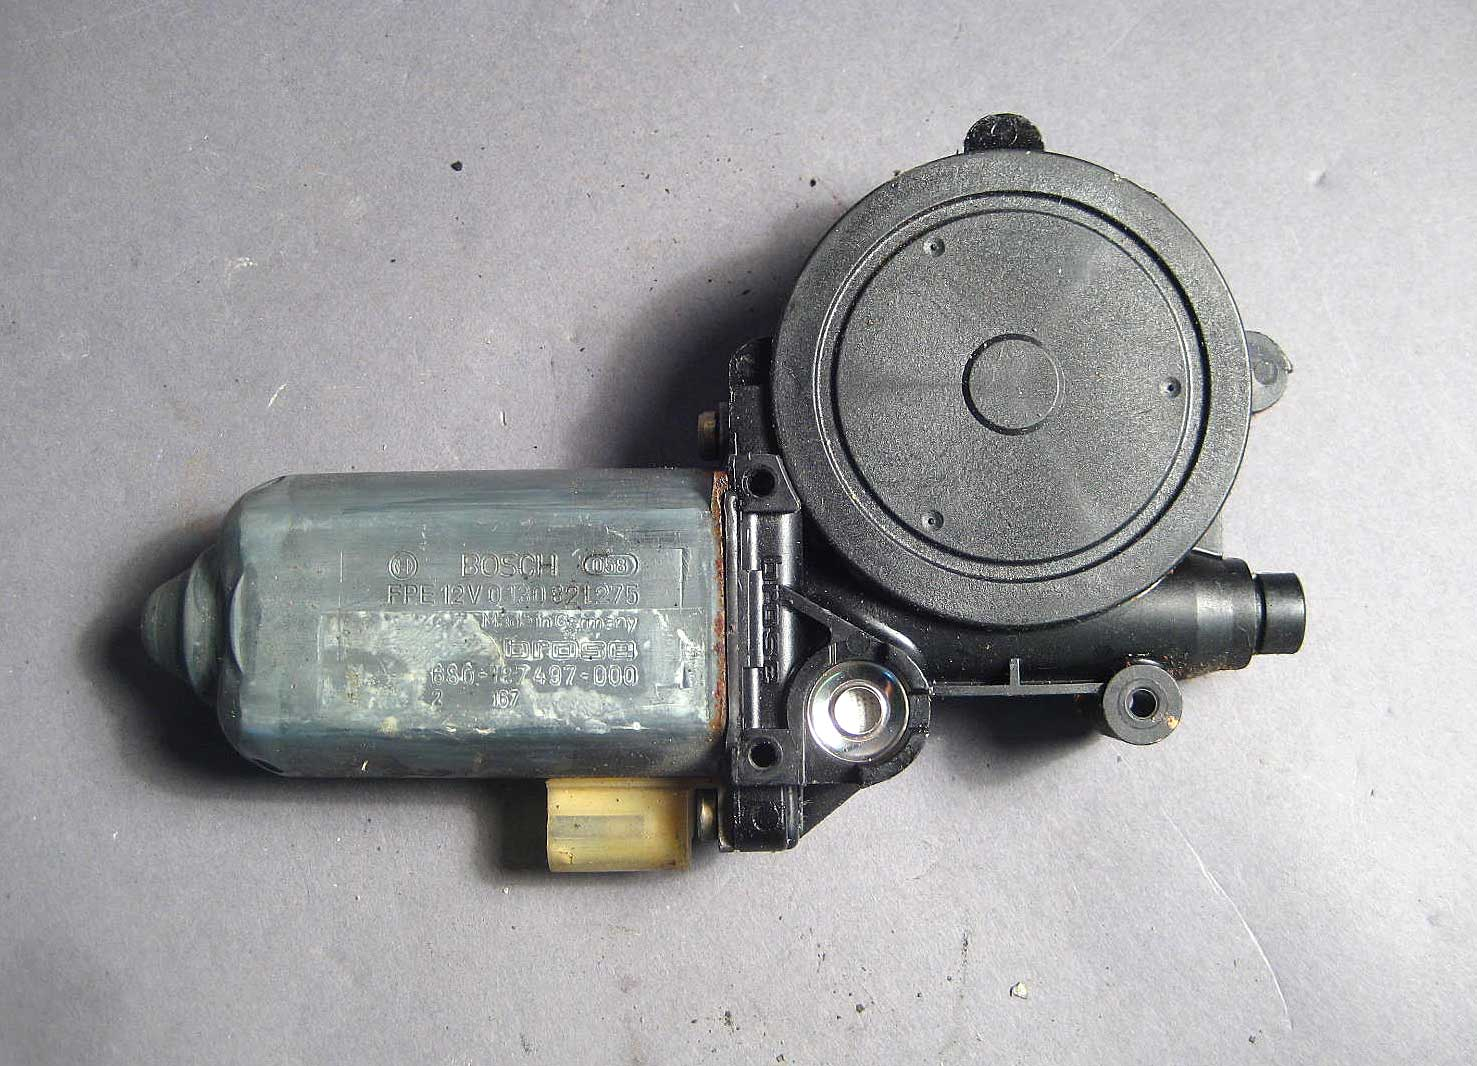 Bmw e36 3 series 4door sedan right rear window motor 1992 for 1995 bmw 318i window regulator